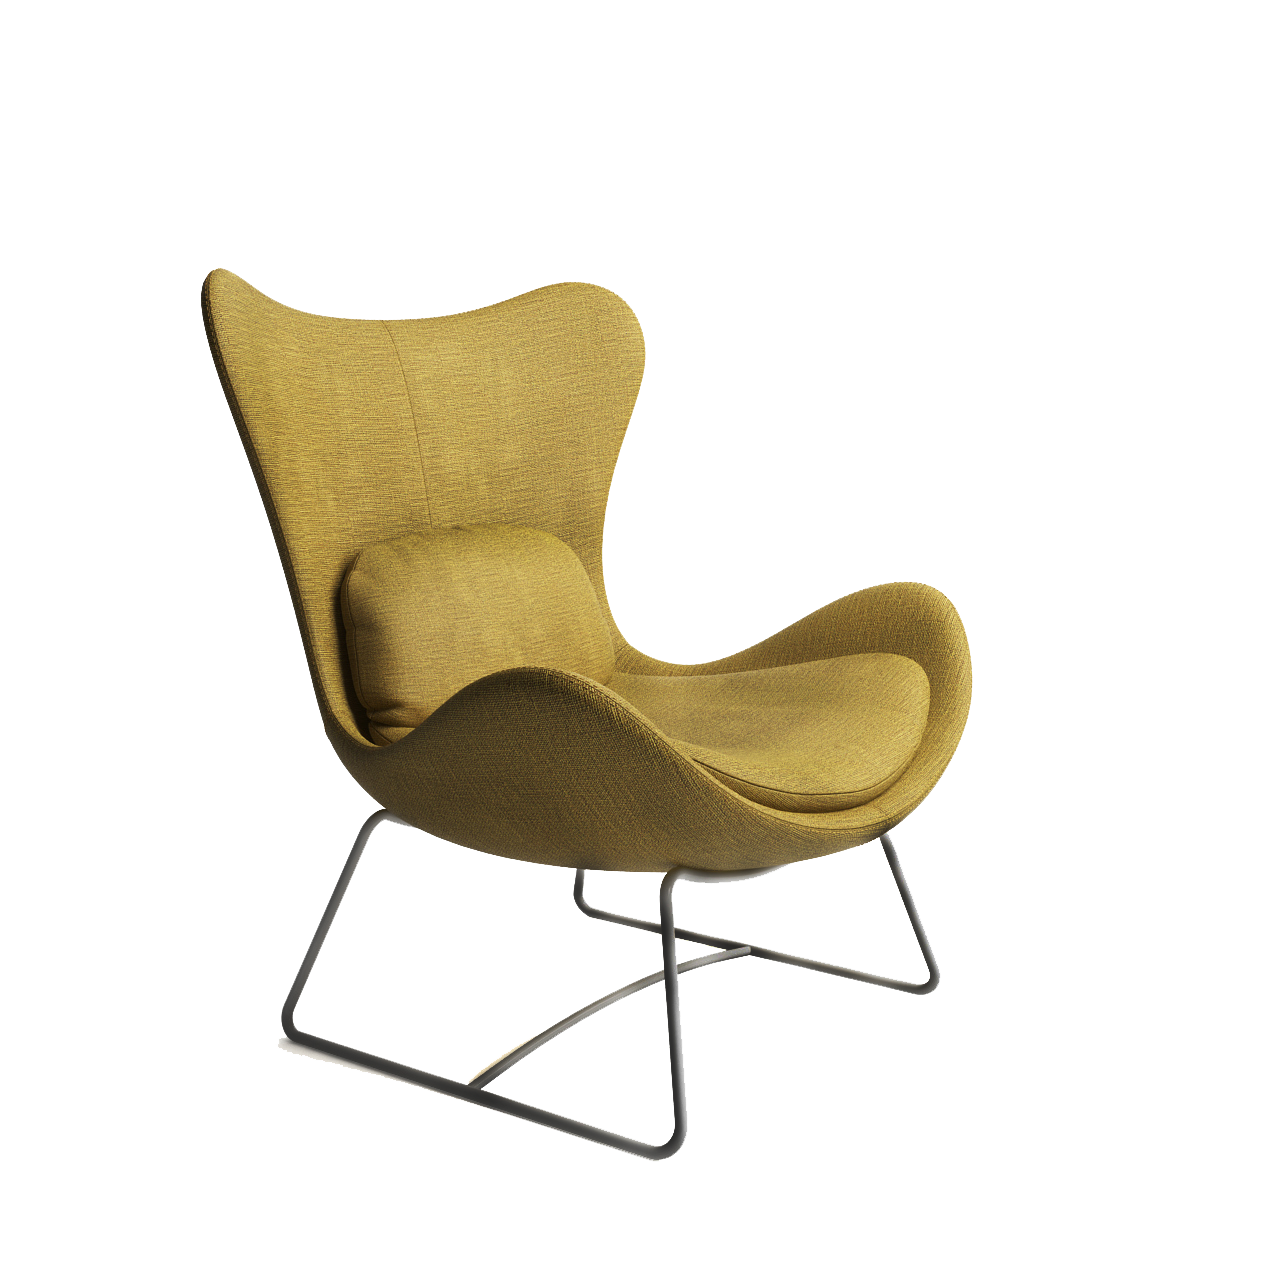 modern furniture chairs png mid century modern chair png cutout cut outs image 491